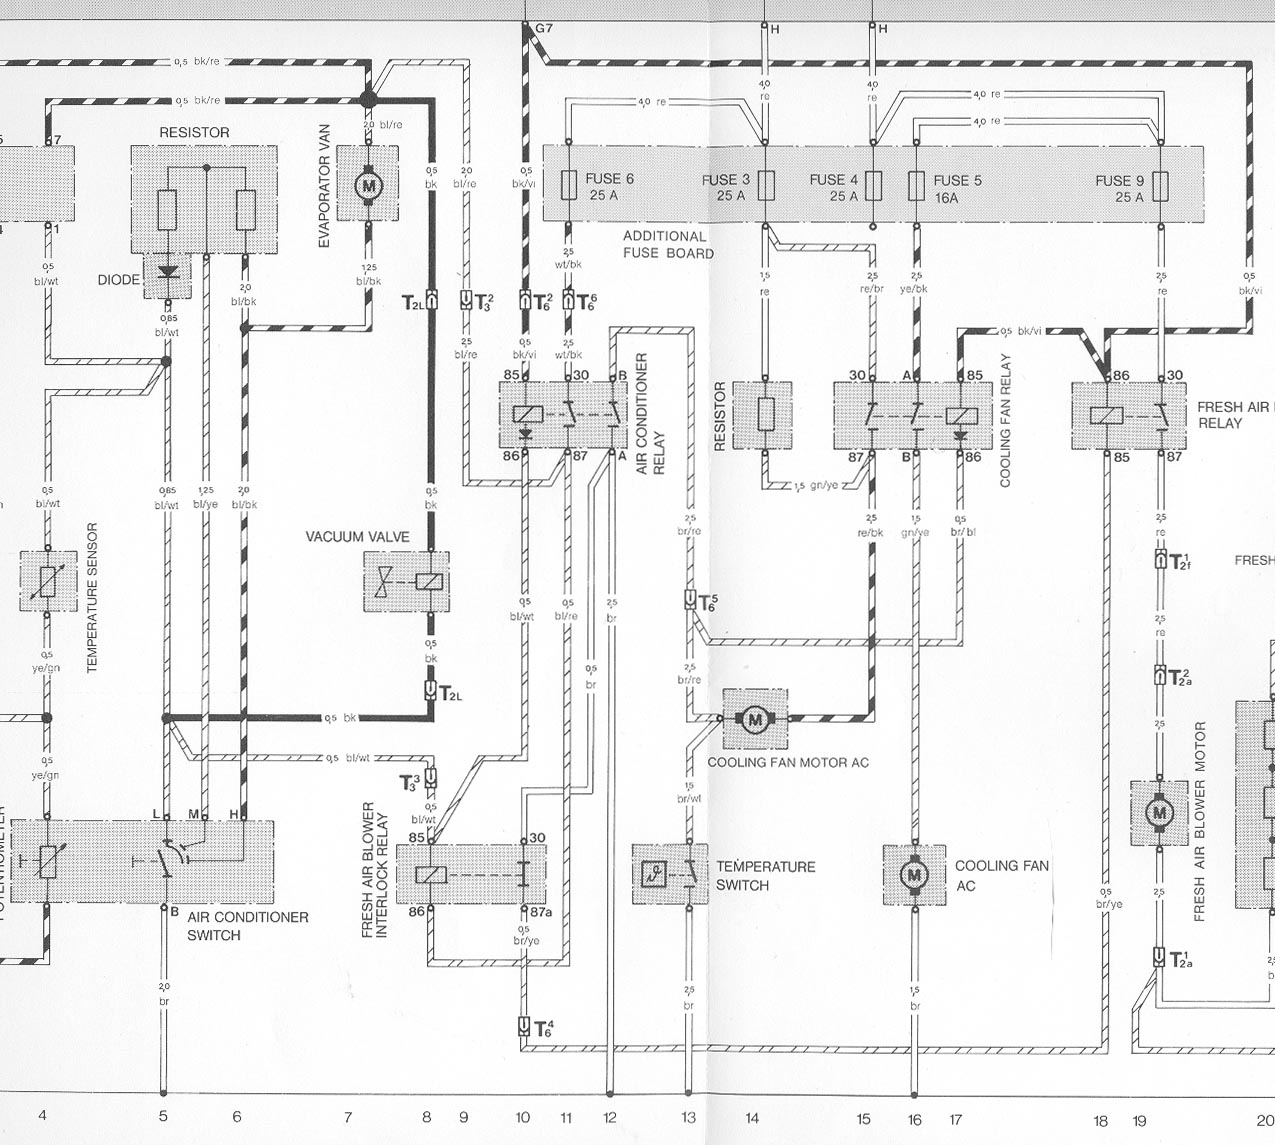 early_cooling_fan_with_ac porsche 924 wiring diagram pdf wiring diagram and schematic design porsche 924 wiring diagram at virtualis.co